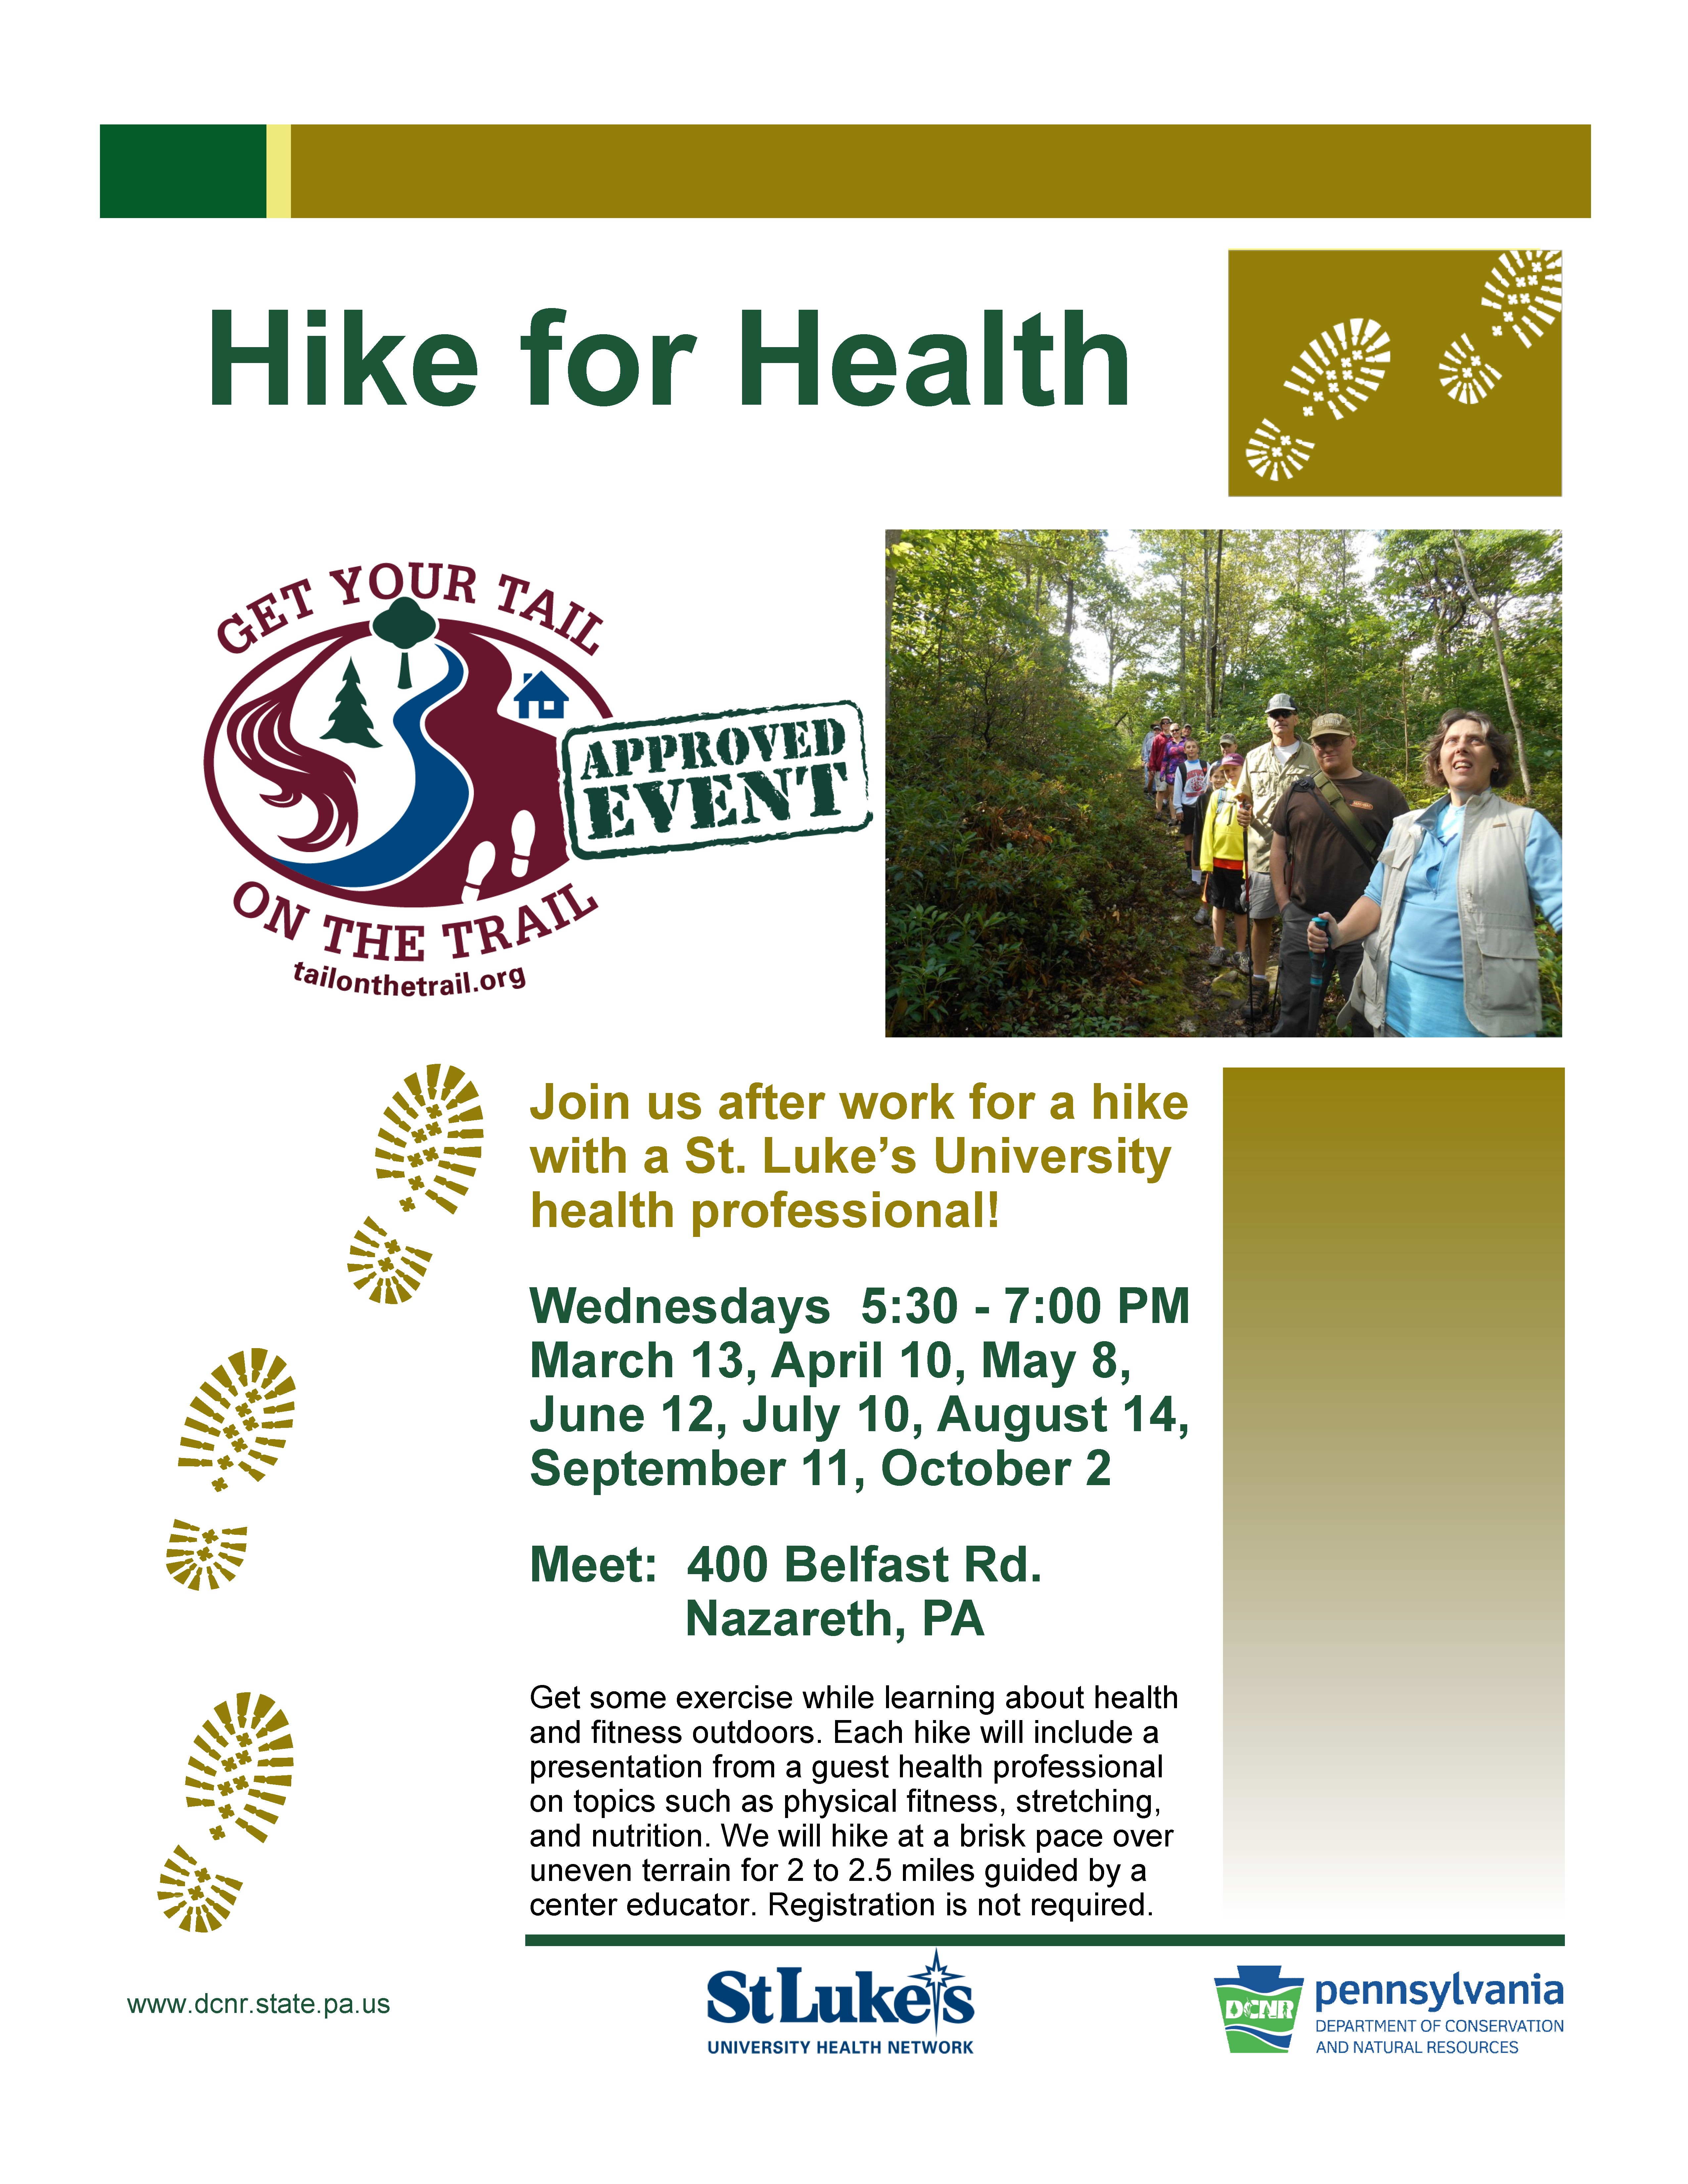 Hike for Health – Get Your Tail on the Trail